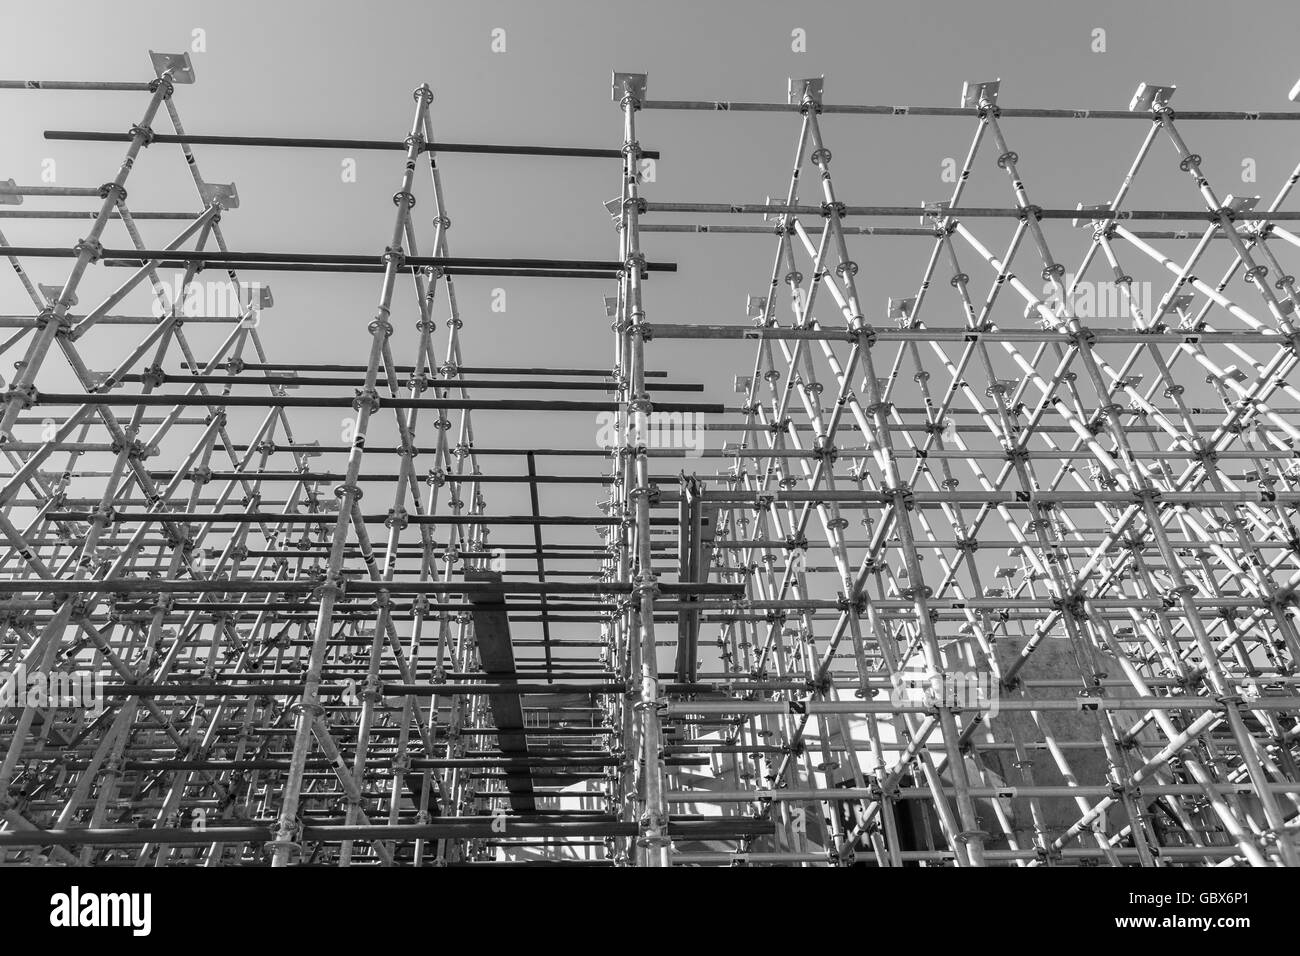 Construction steel scaffolding on building site closeup photo detail. - Stock Image